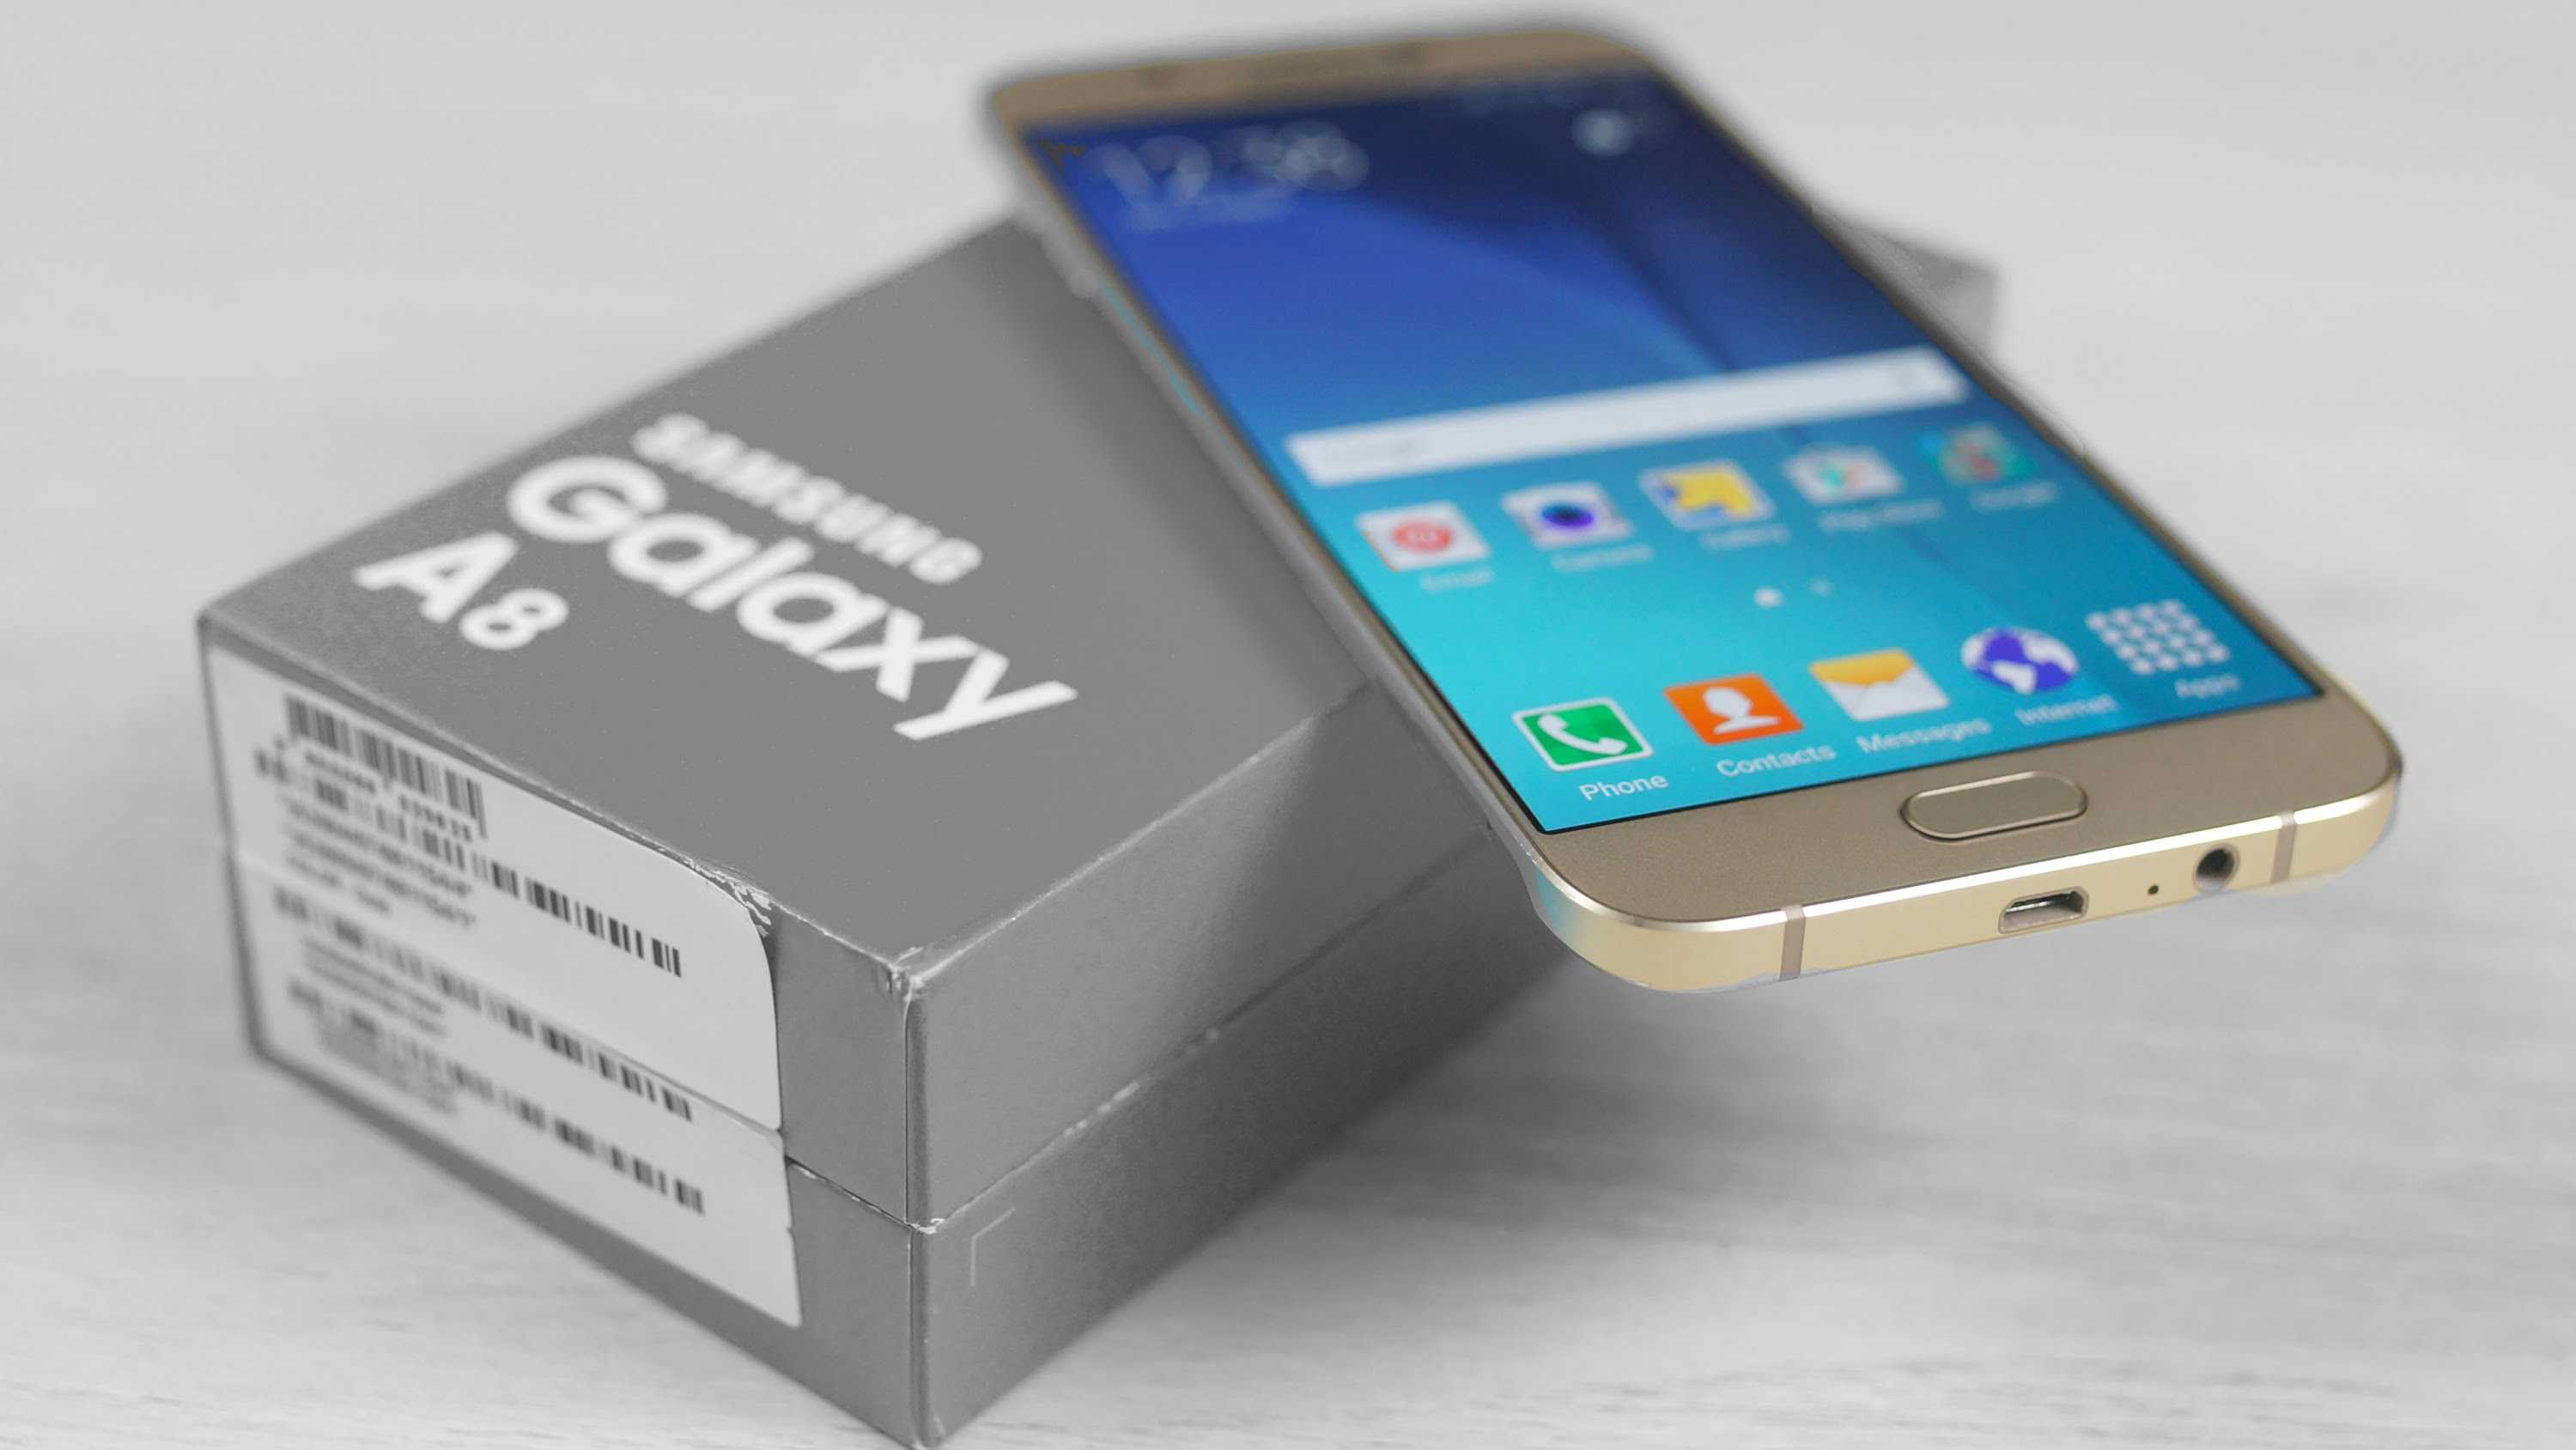 Galaxy S7, Galaxy S7 Edge Power Samsung's Best Performance in 9 Quarters